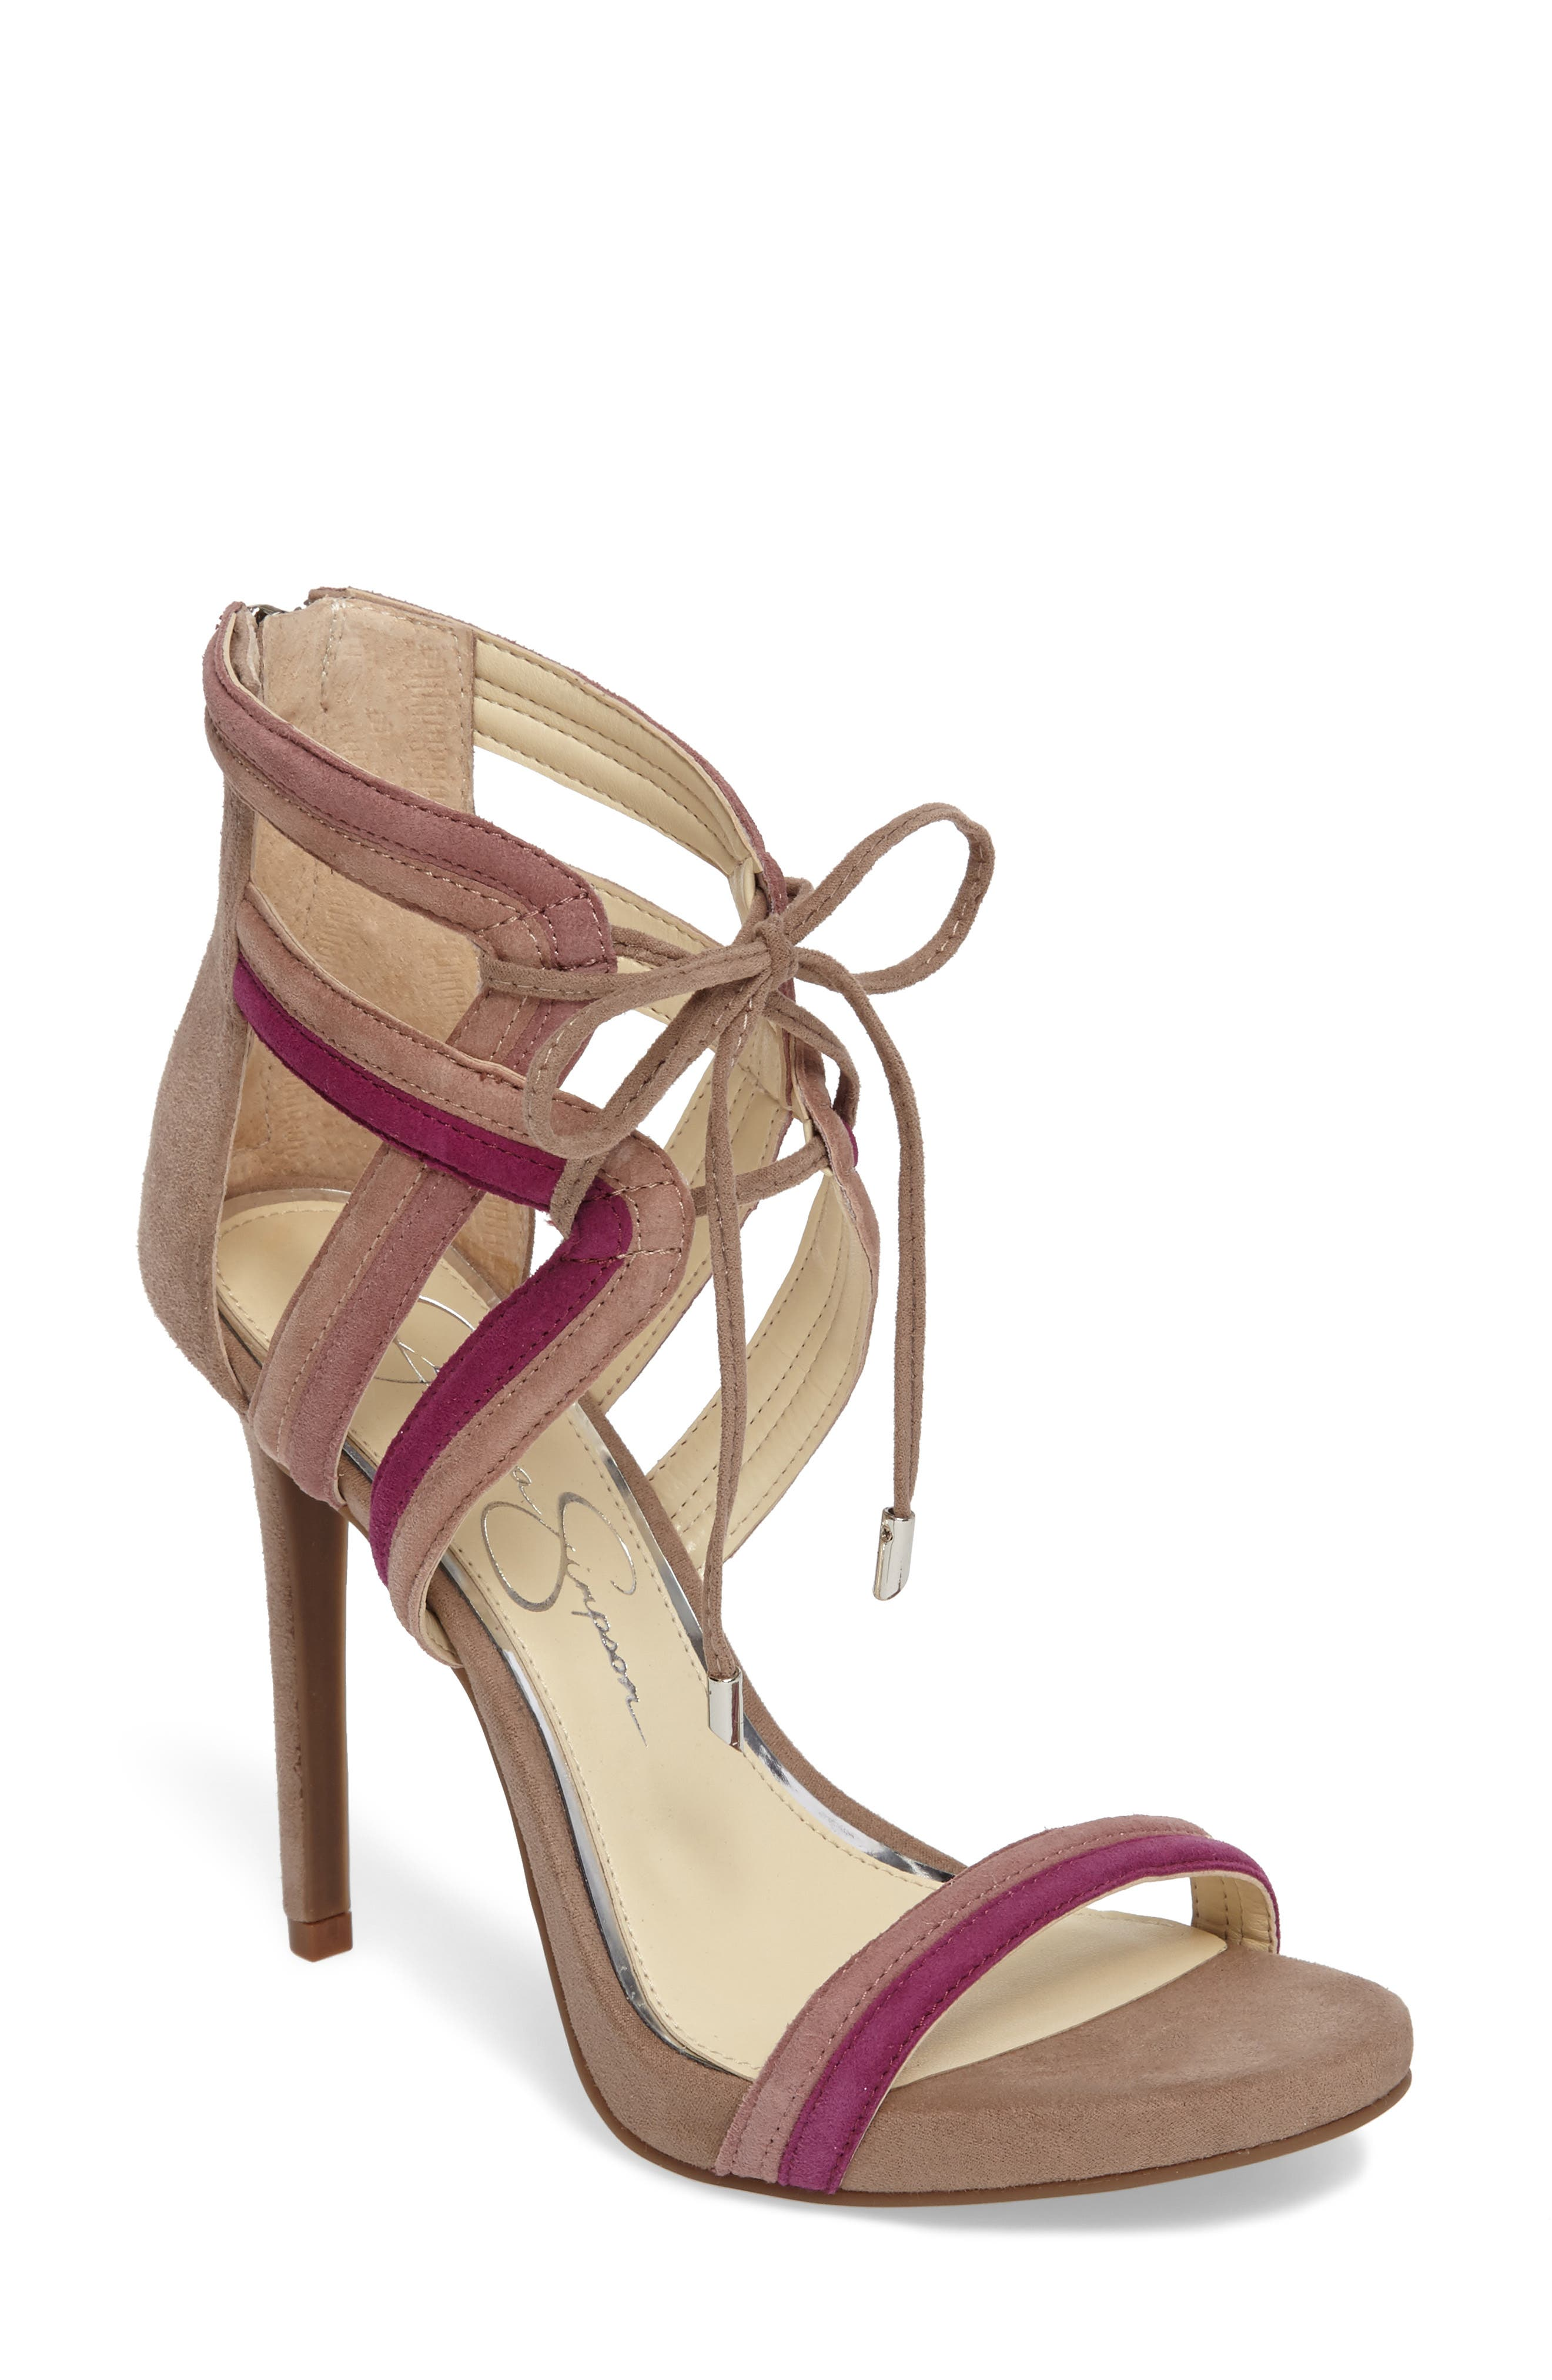 Rensa Sandal,                         Main,                         color, 201